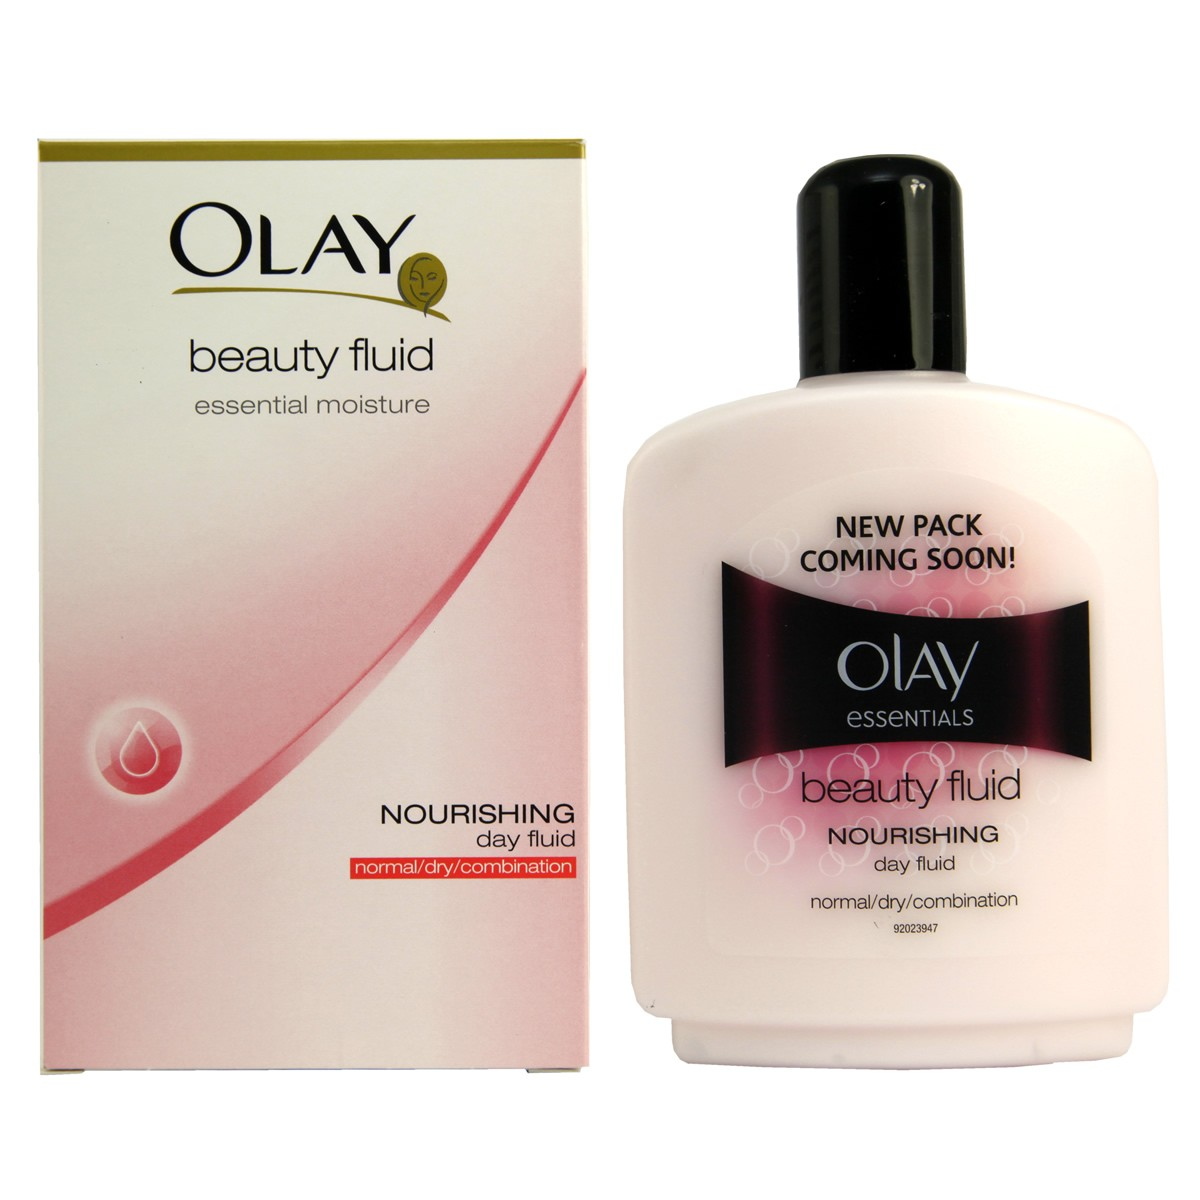 Olay Nourishing Beauty Fluid - Normal/ Dry/ Combination Skin